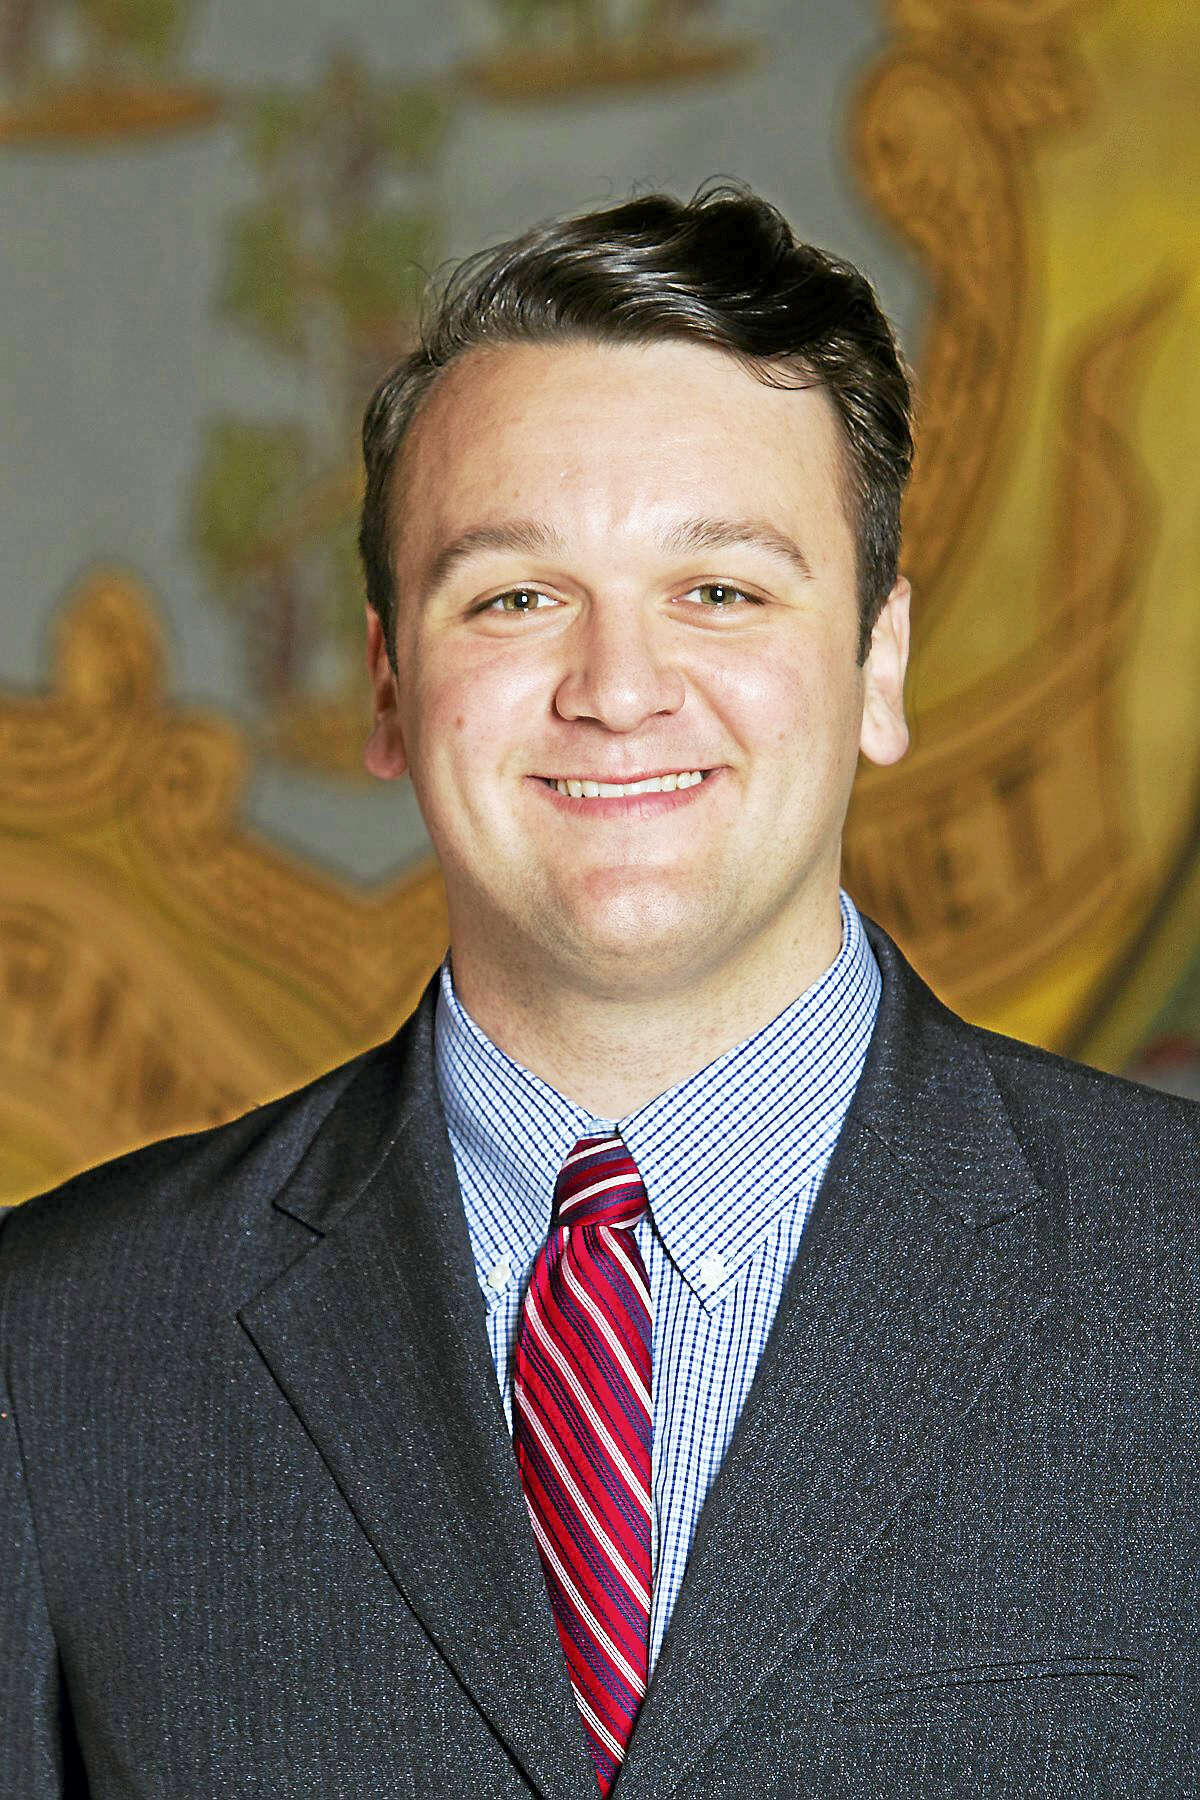 State Rep. Jesse MacLachlan, R-35, is running for a second term as a state representative. (Contributed Photo)